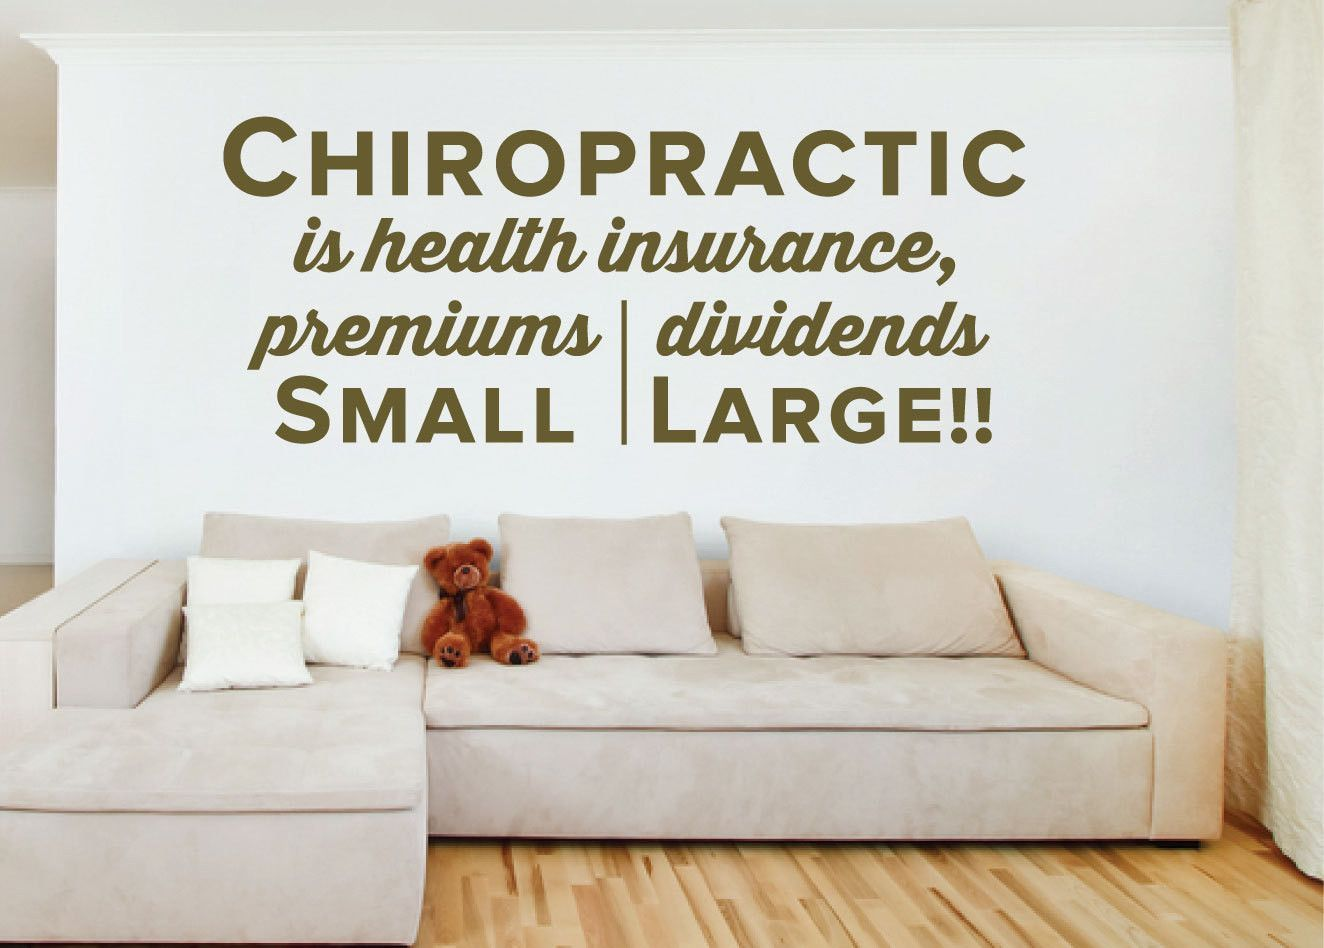 Chiropractic is health insurance premiums small dividends